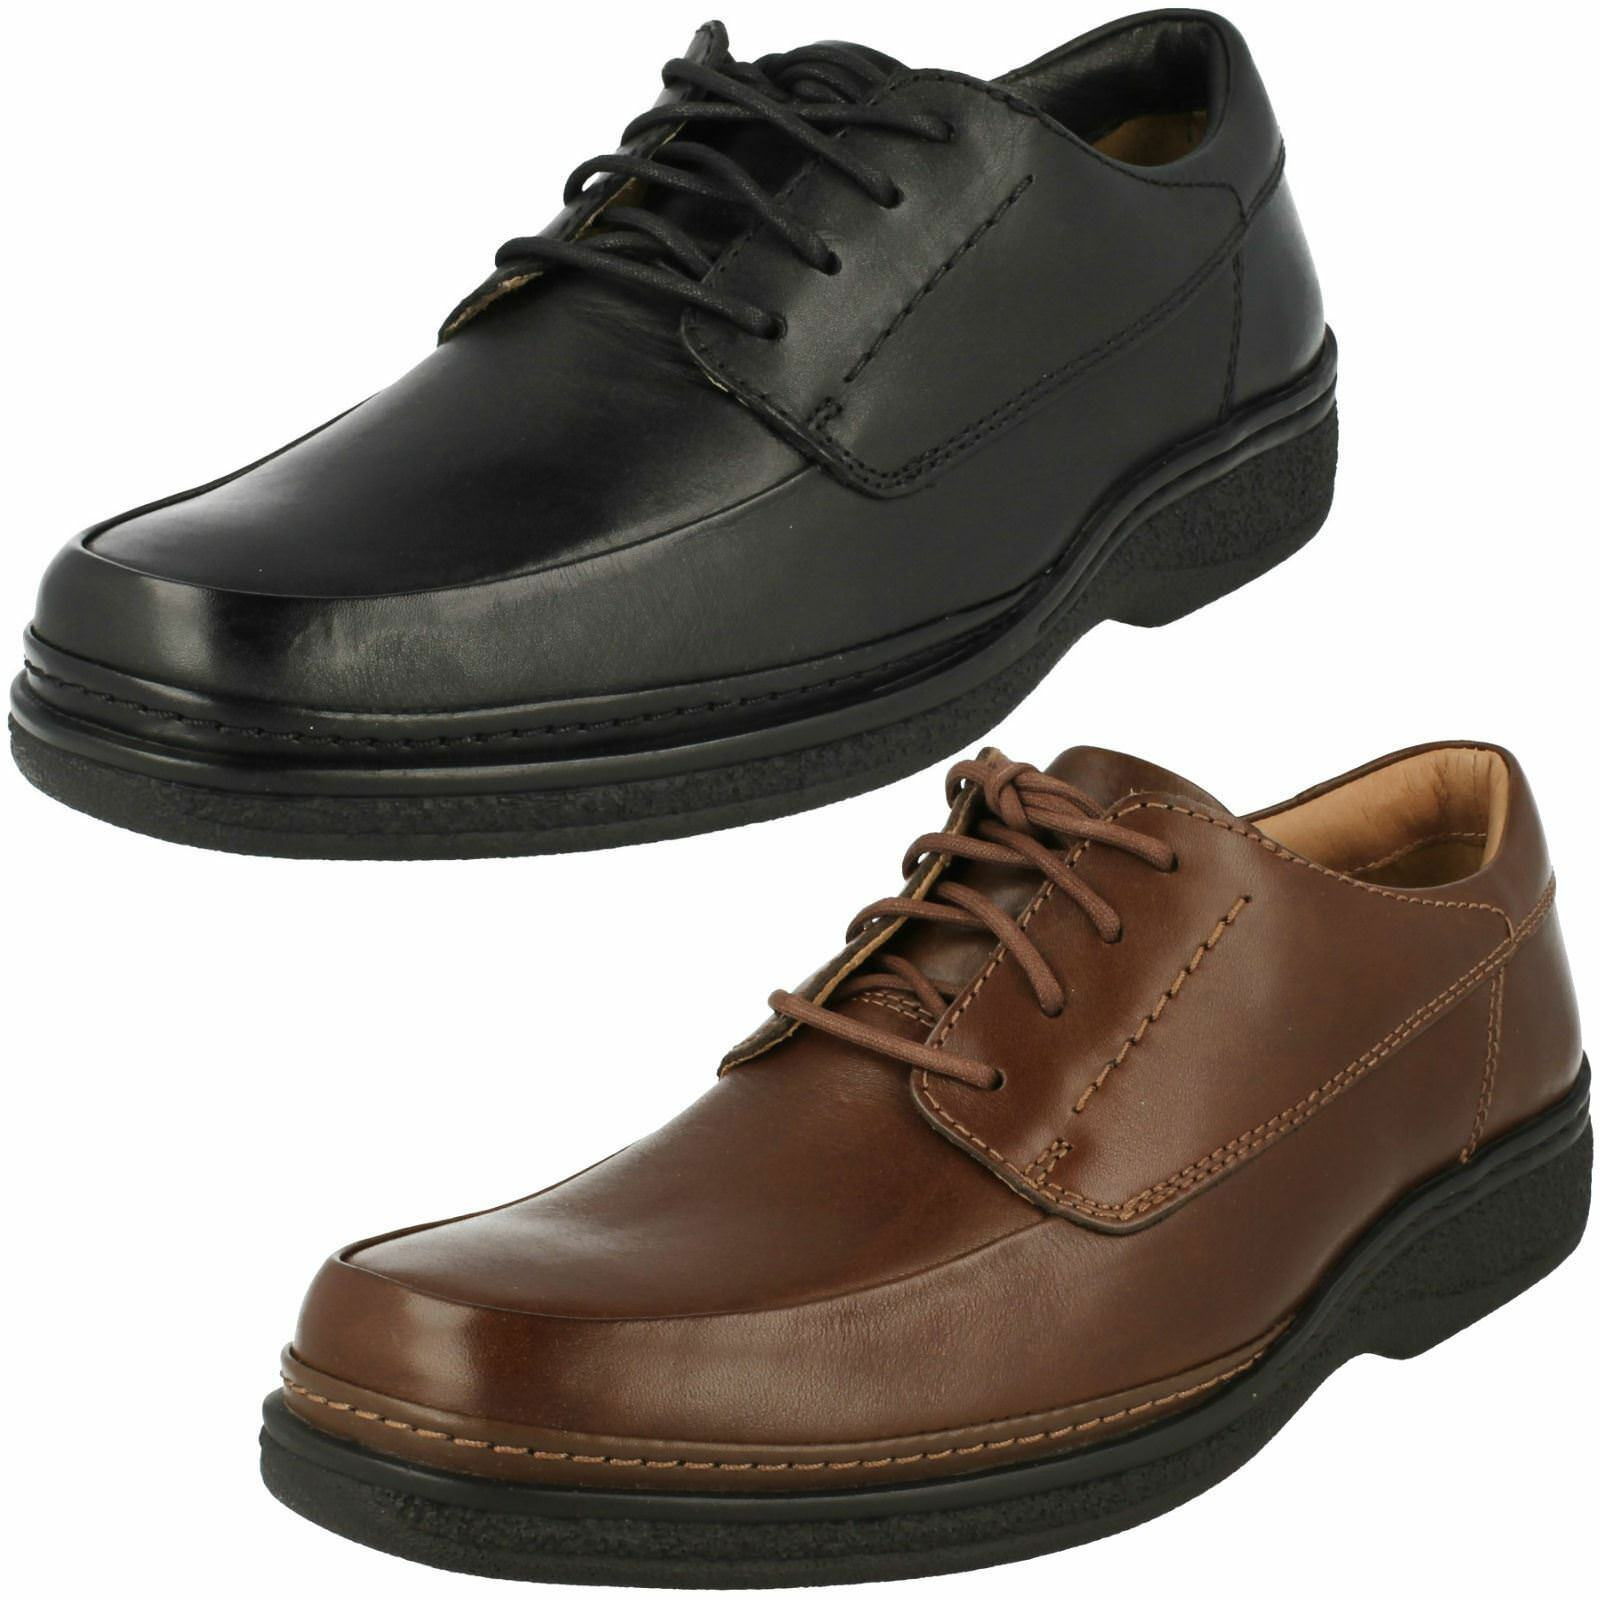 Mens Clarks Formal Lace Up Shoes 'Stonehill Pace'